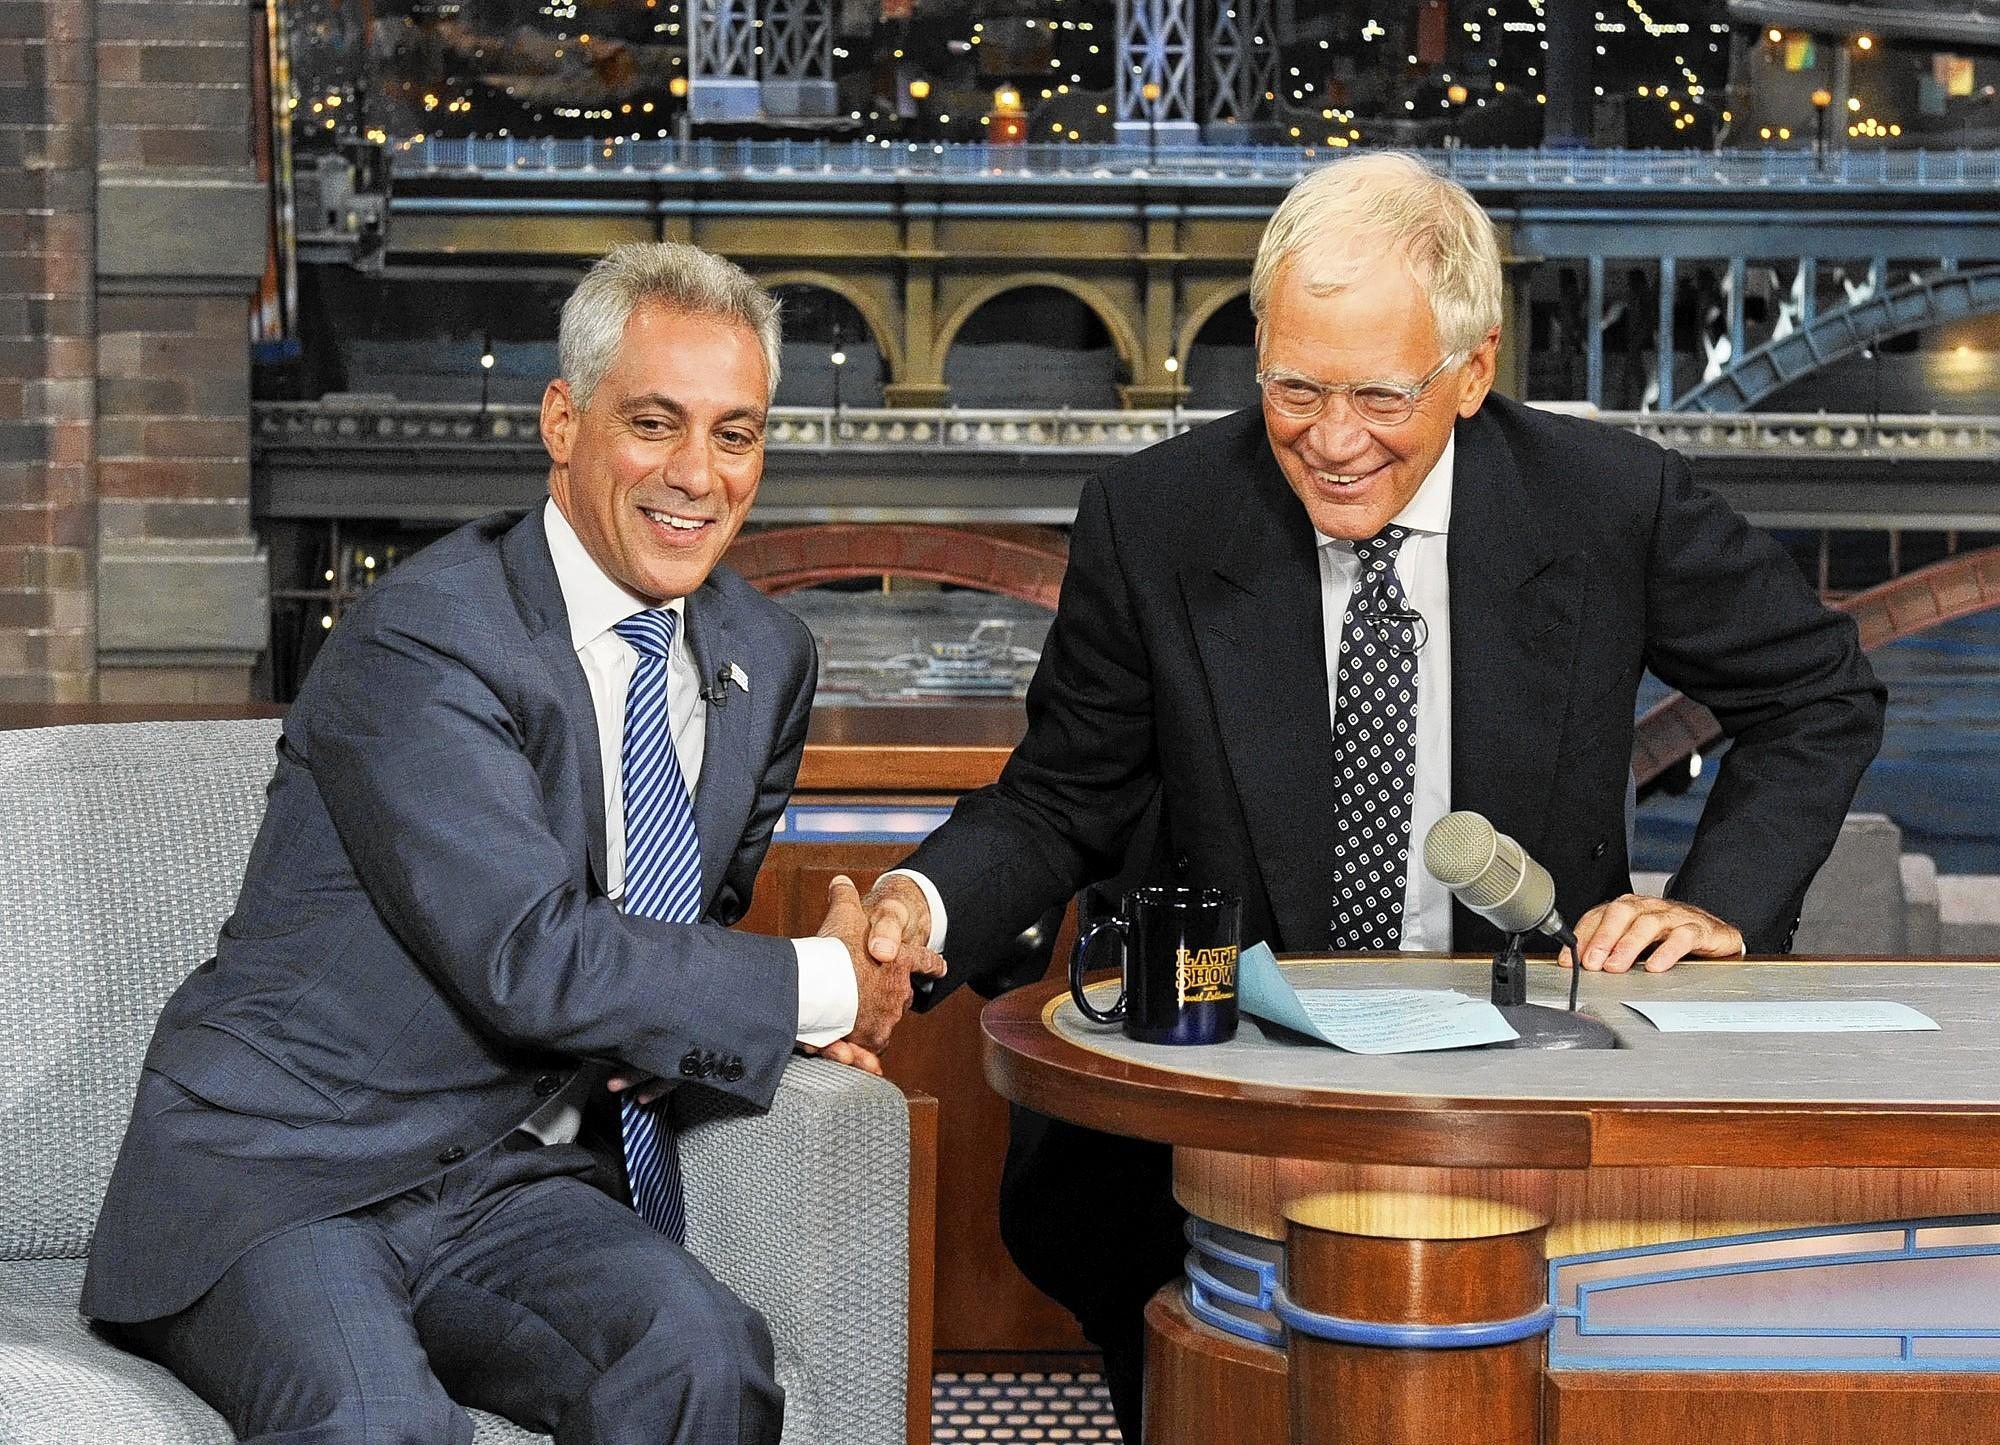 Mayor of Chicago Rahm Emanuel makes his first visit to the 'Late Show.'